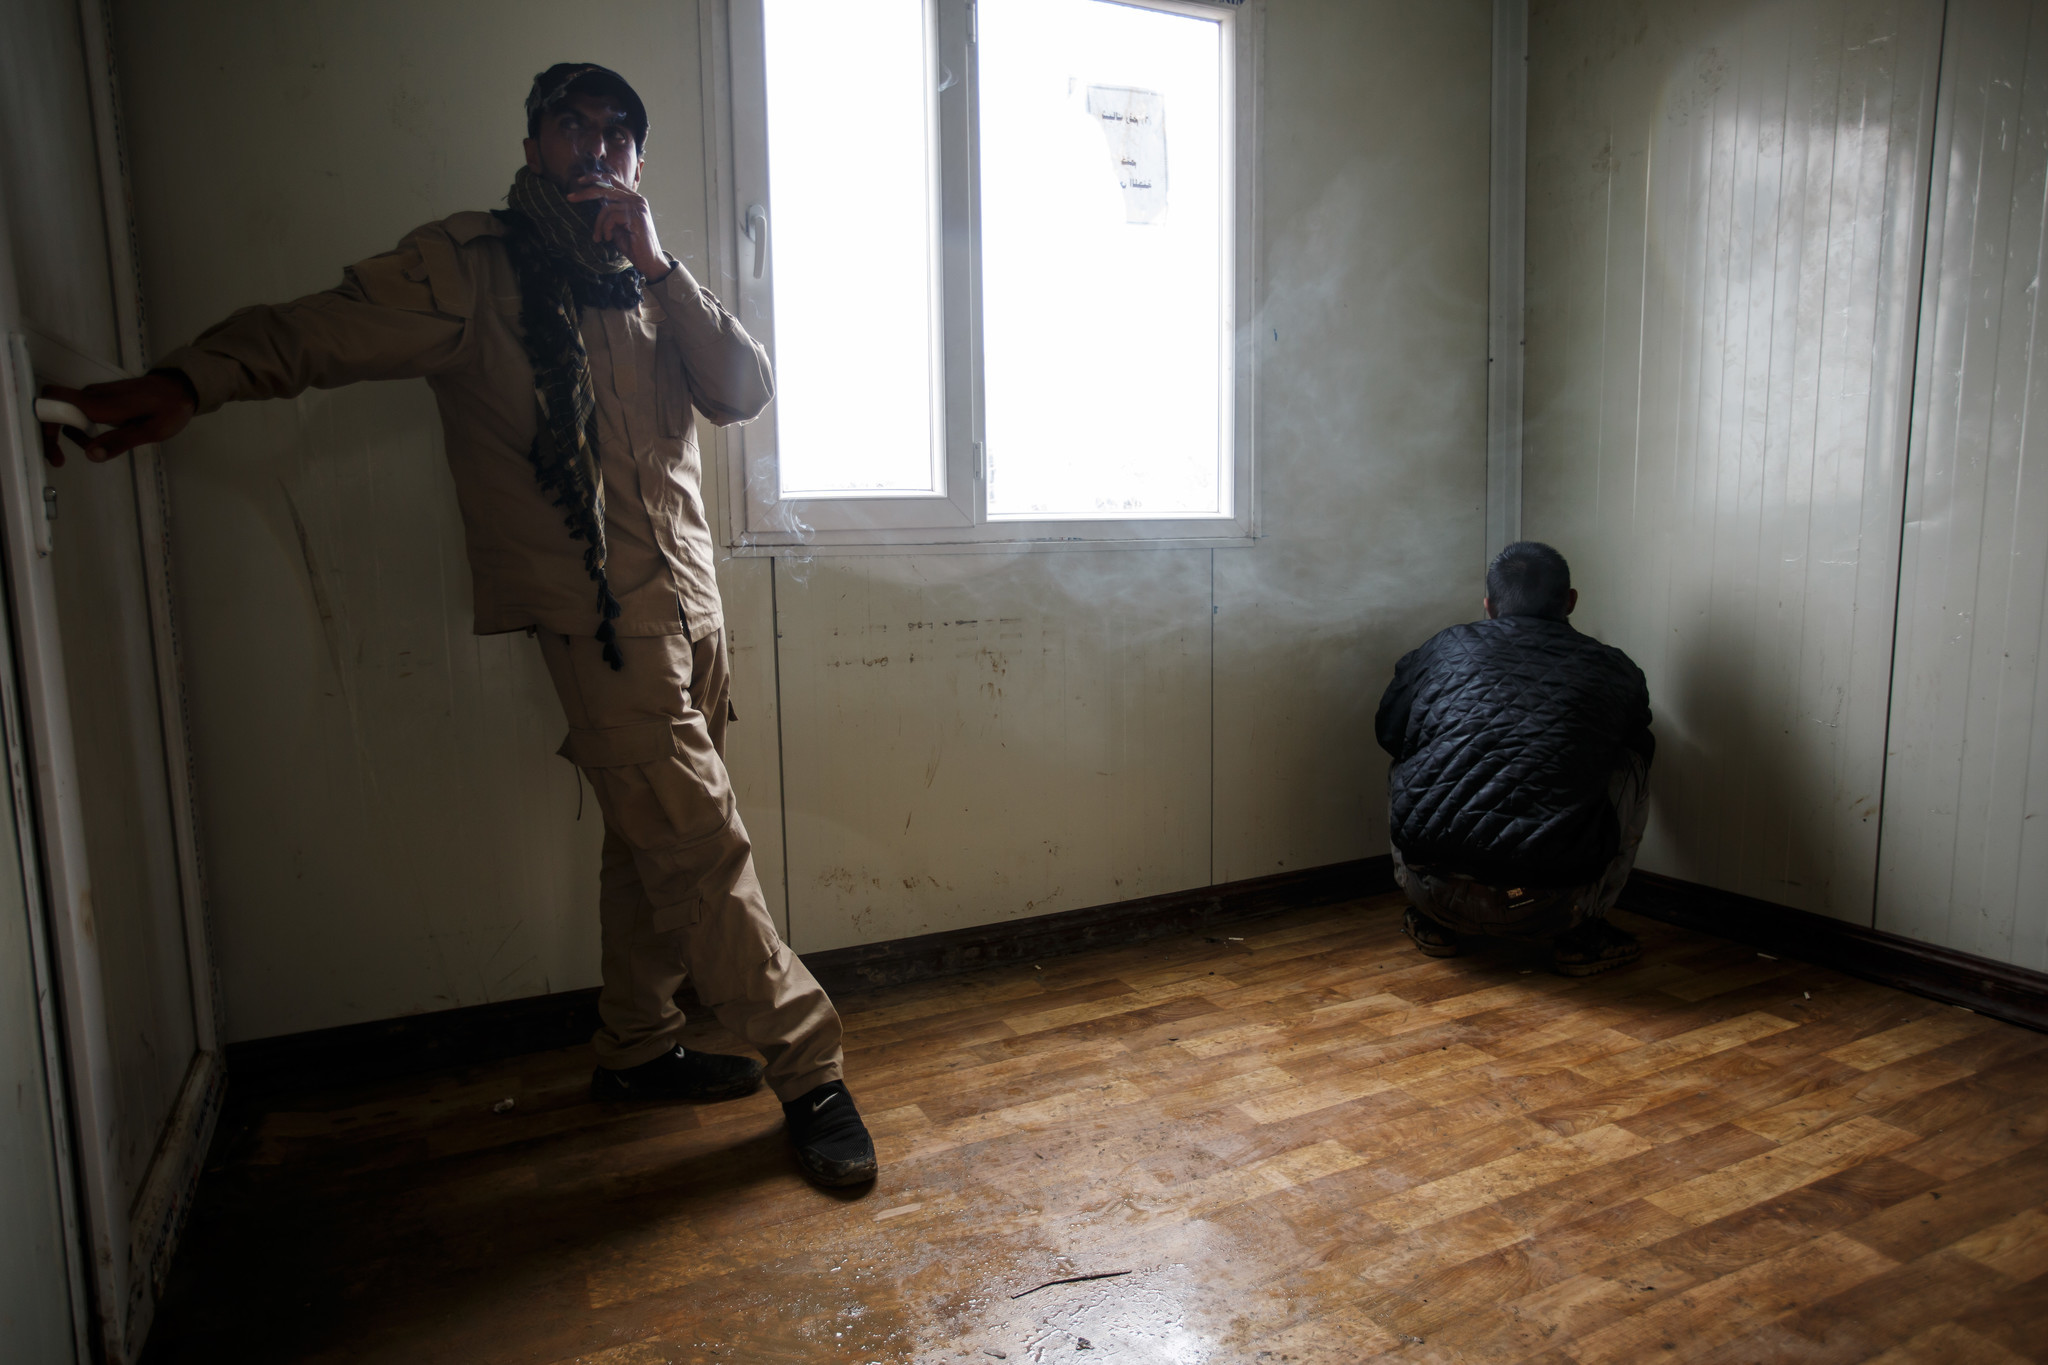 A man suspected of being an ISIS member, right, is put in a holding room before being sent to another facility for further questioning.